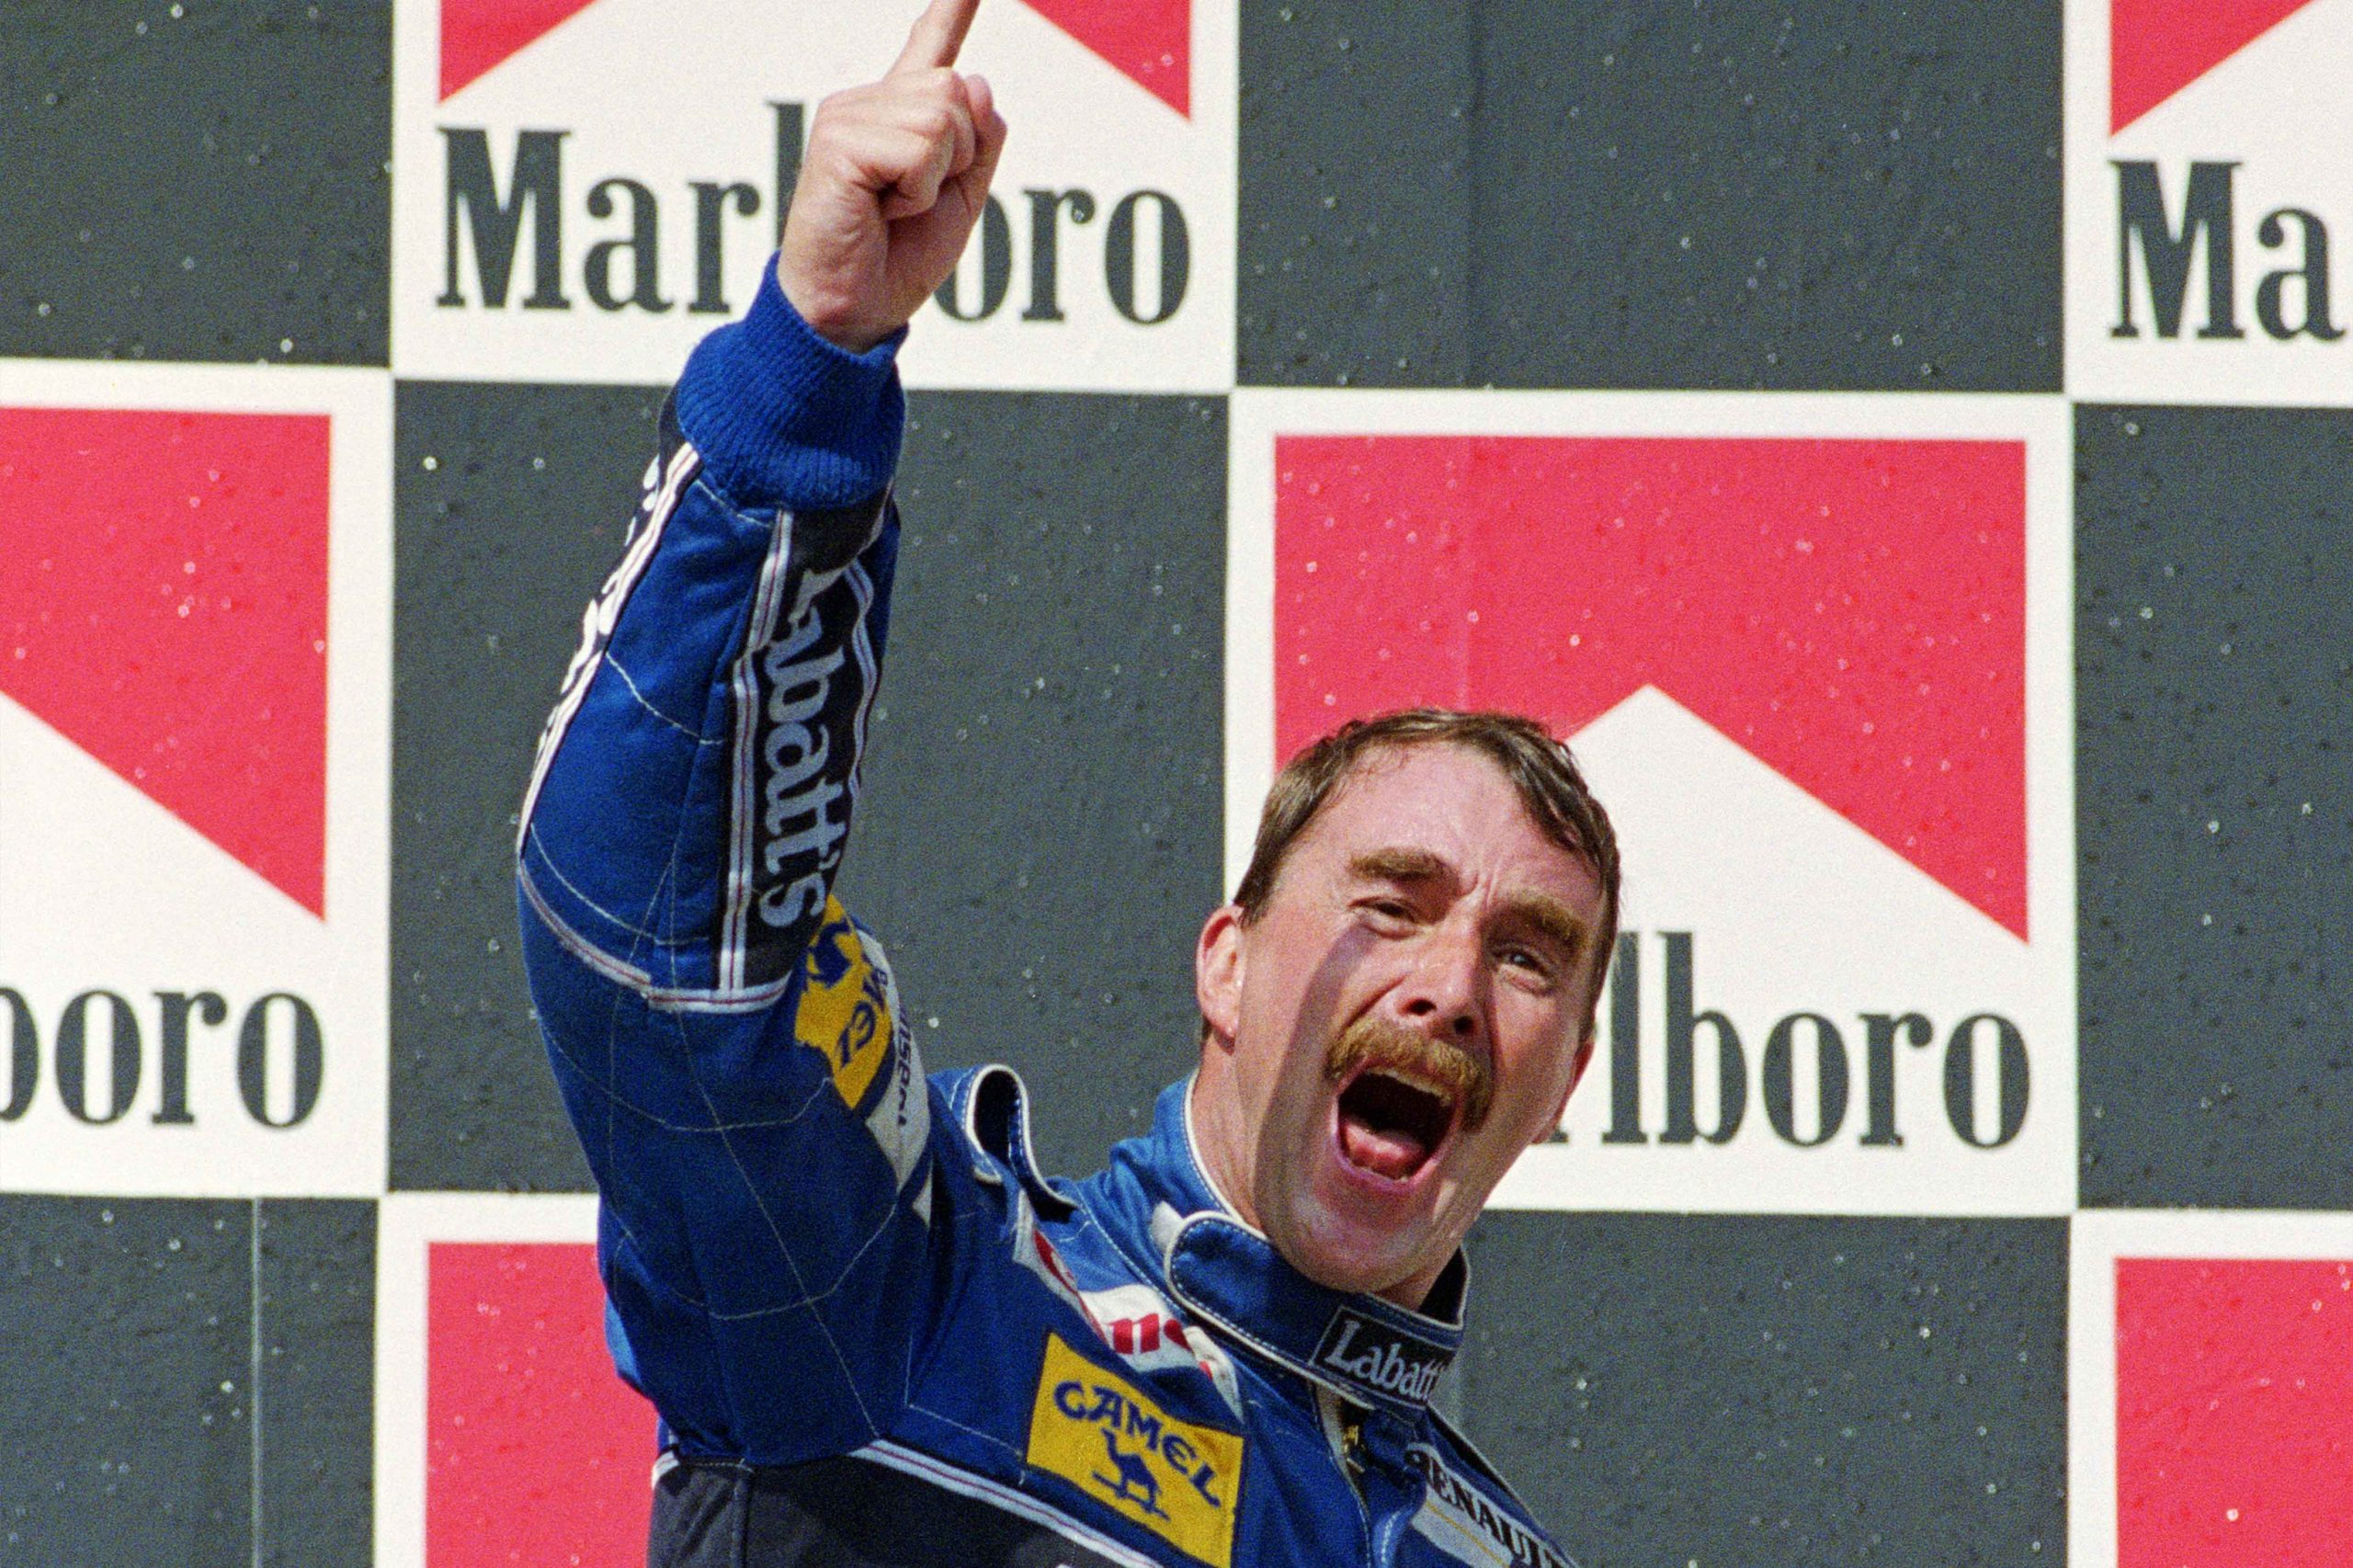 Nigel-Mansell-celebrates-clinching-the-1992-F1-drivers-championship-at-the-Hungarian-Grand-prix